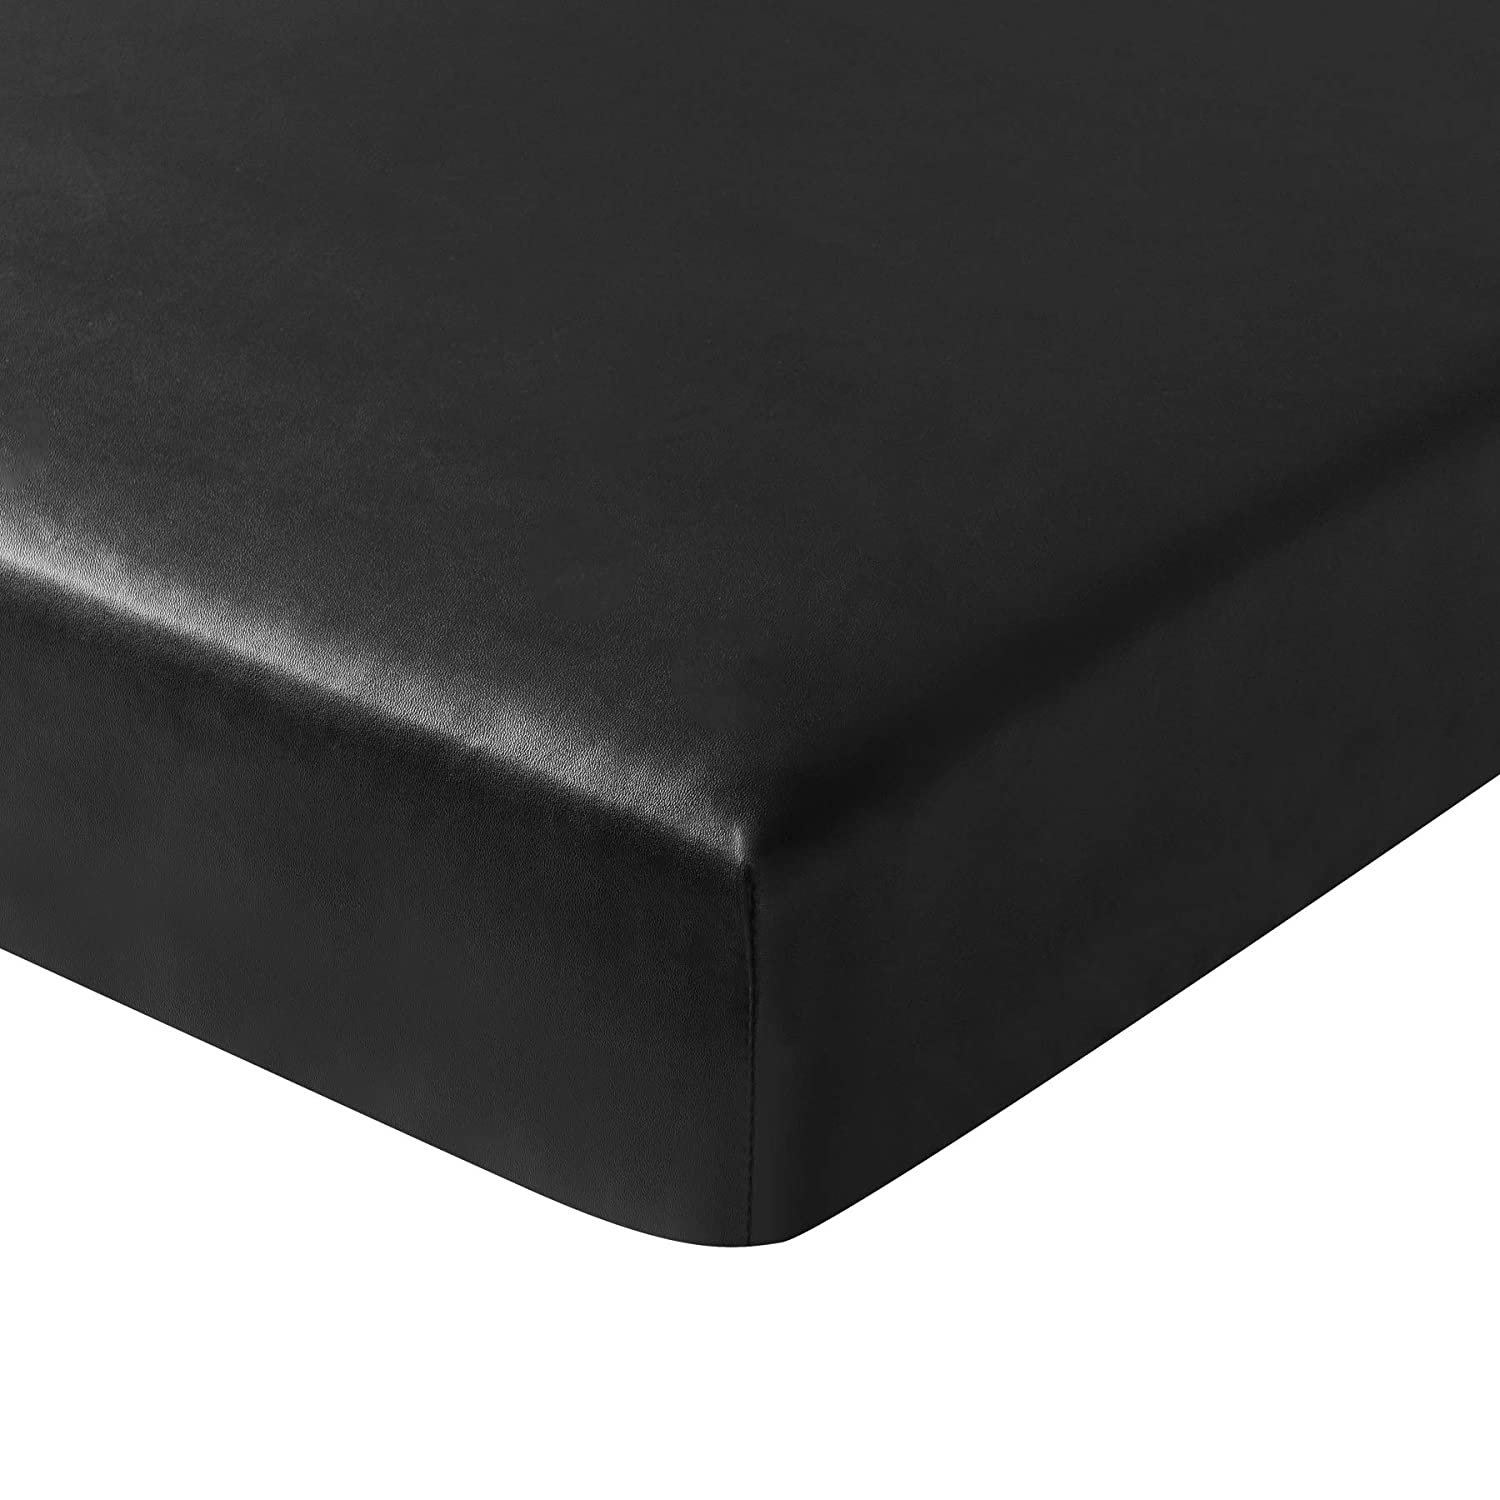 Subrtex Spandex Elastic PU Leather Couch Stretch Water-Proof Patio Durable Chair Slipcovers Furniture Protector Slip Cover for Settee Sofa Seat for Replacement in Home (Chair Cushion, Black Leather)